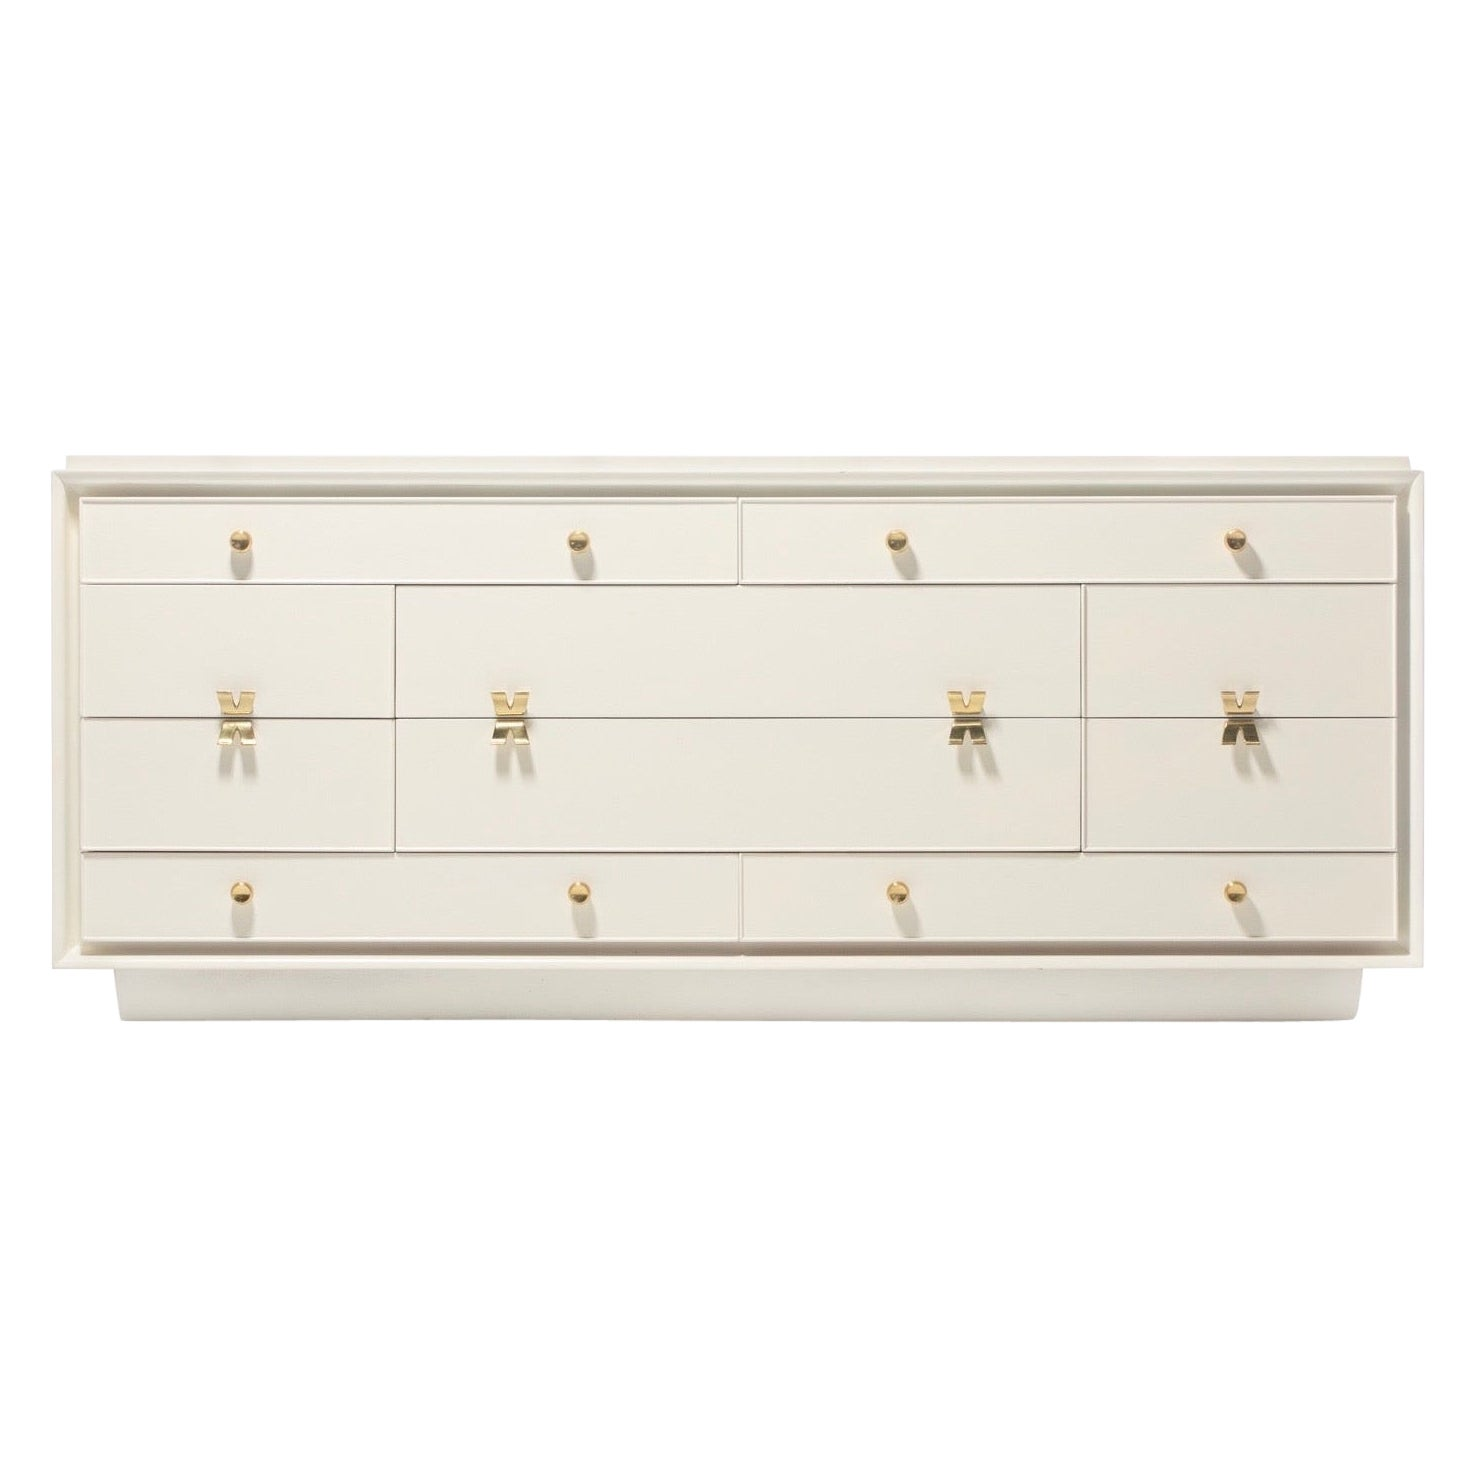 Early Paul Frankl X Brass Pull Dresser for Johnson Furniture in White Chocolate